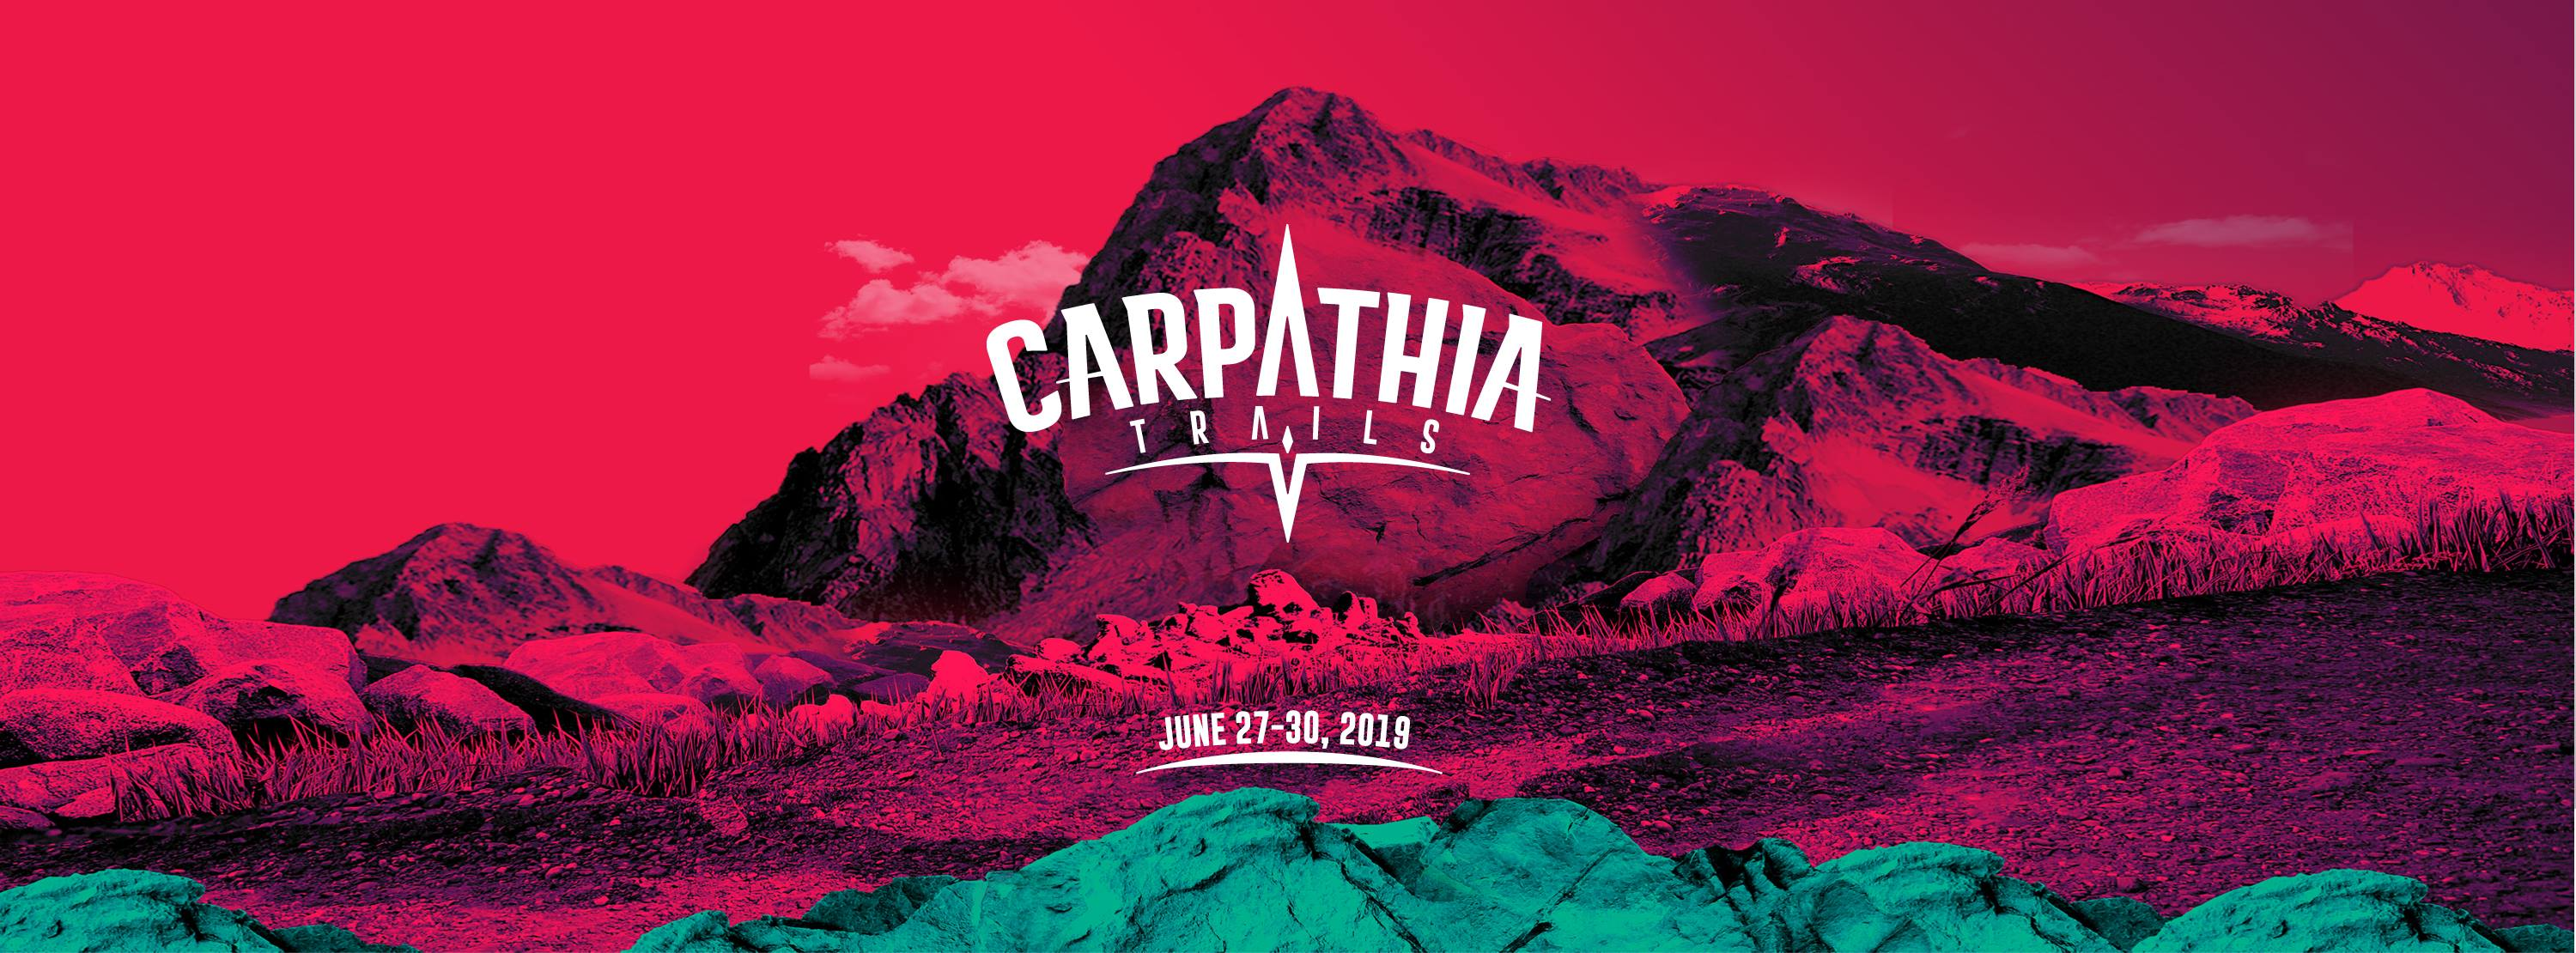 Carpathia Trails 2019